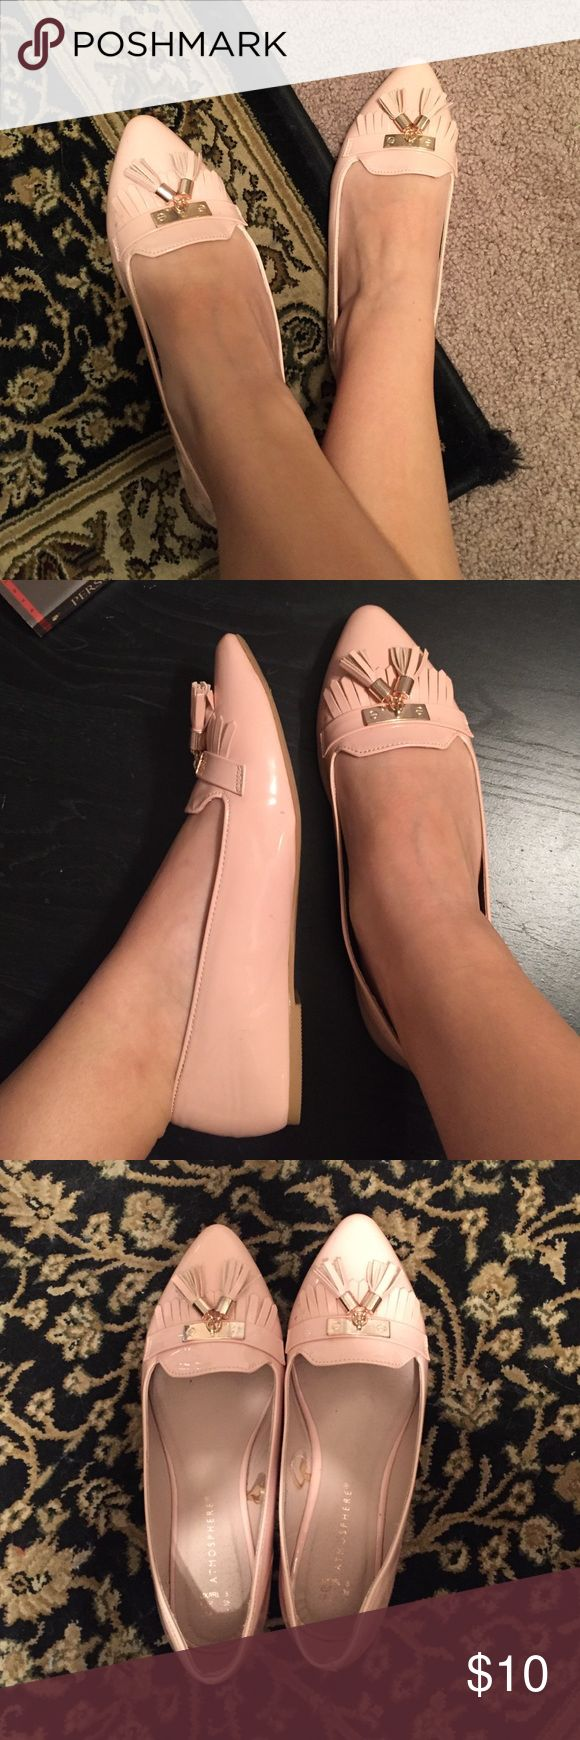 Primark Atmosphere pink pointed flats in size 7 Only been worn once! Size 7, light pink with gold accents and tassels. Also fits a size 7.5 Primark Shoes Flats & Loafers